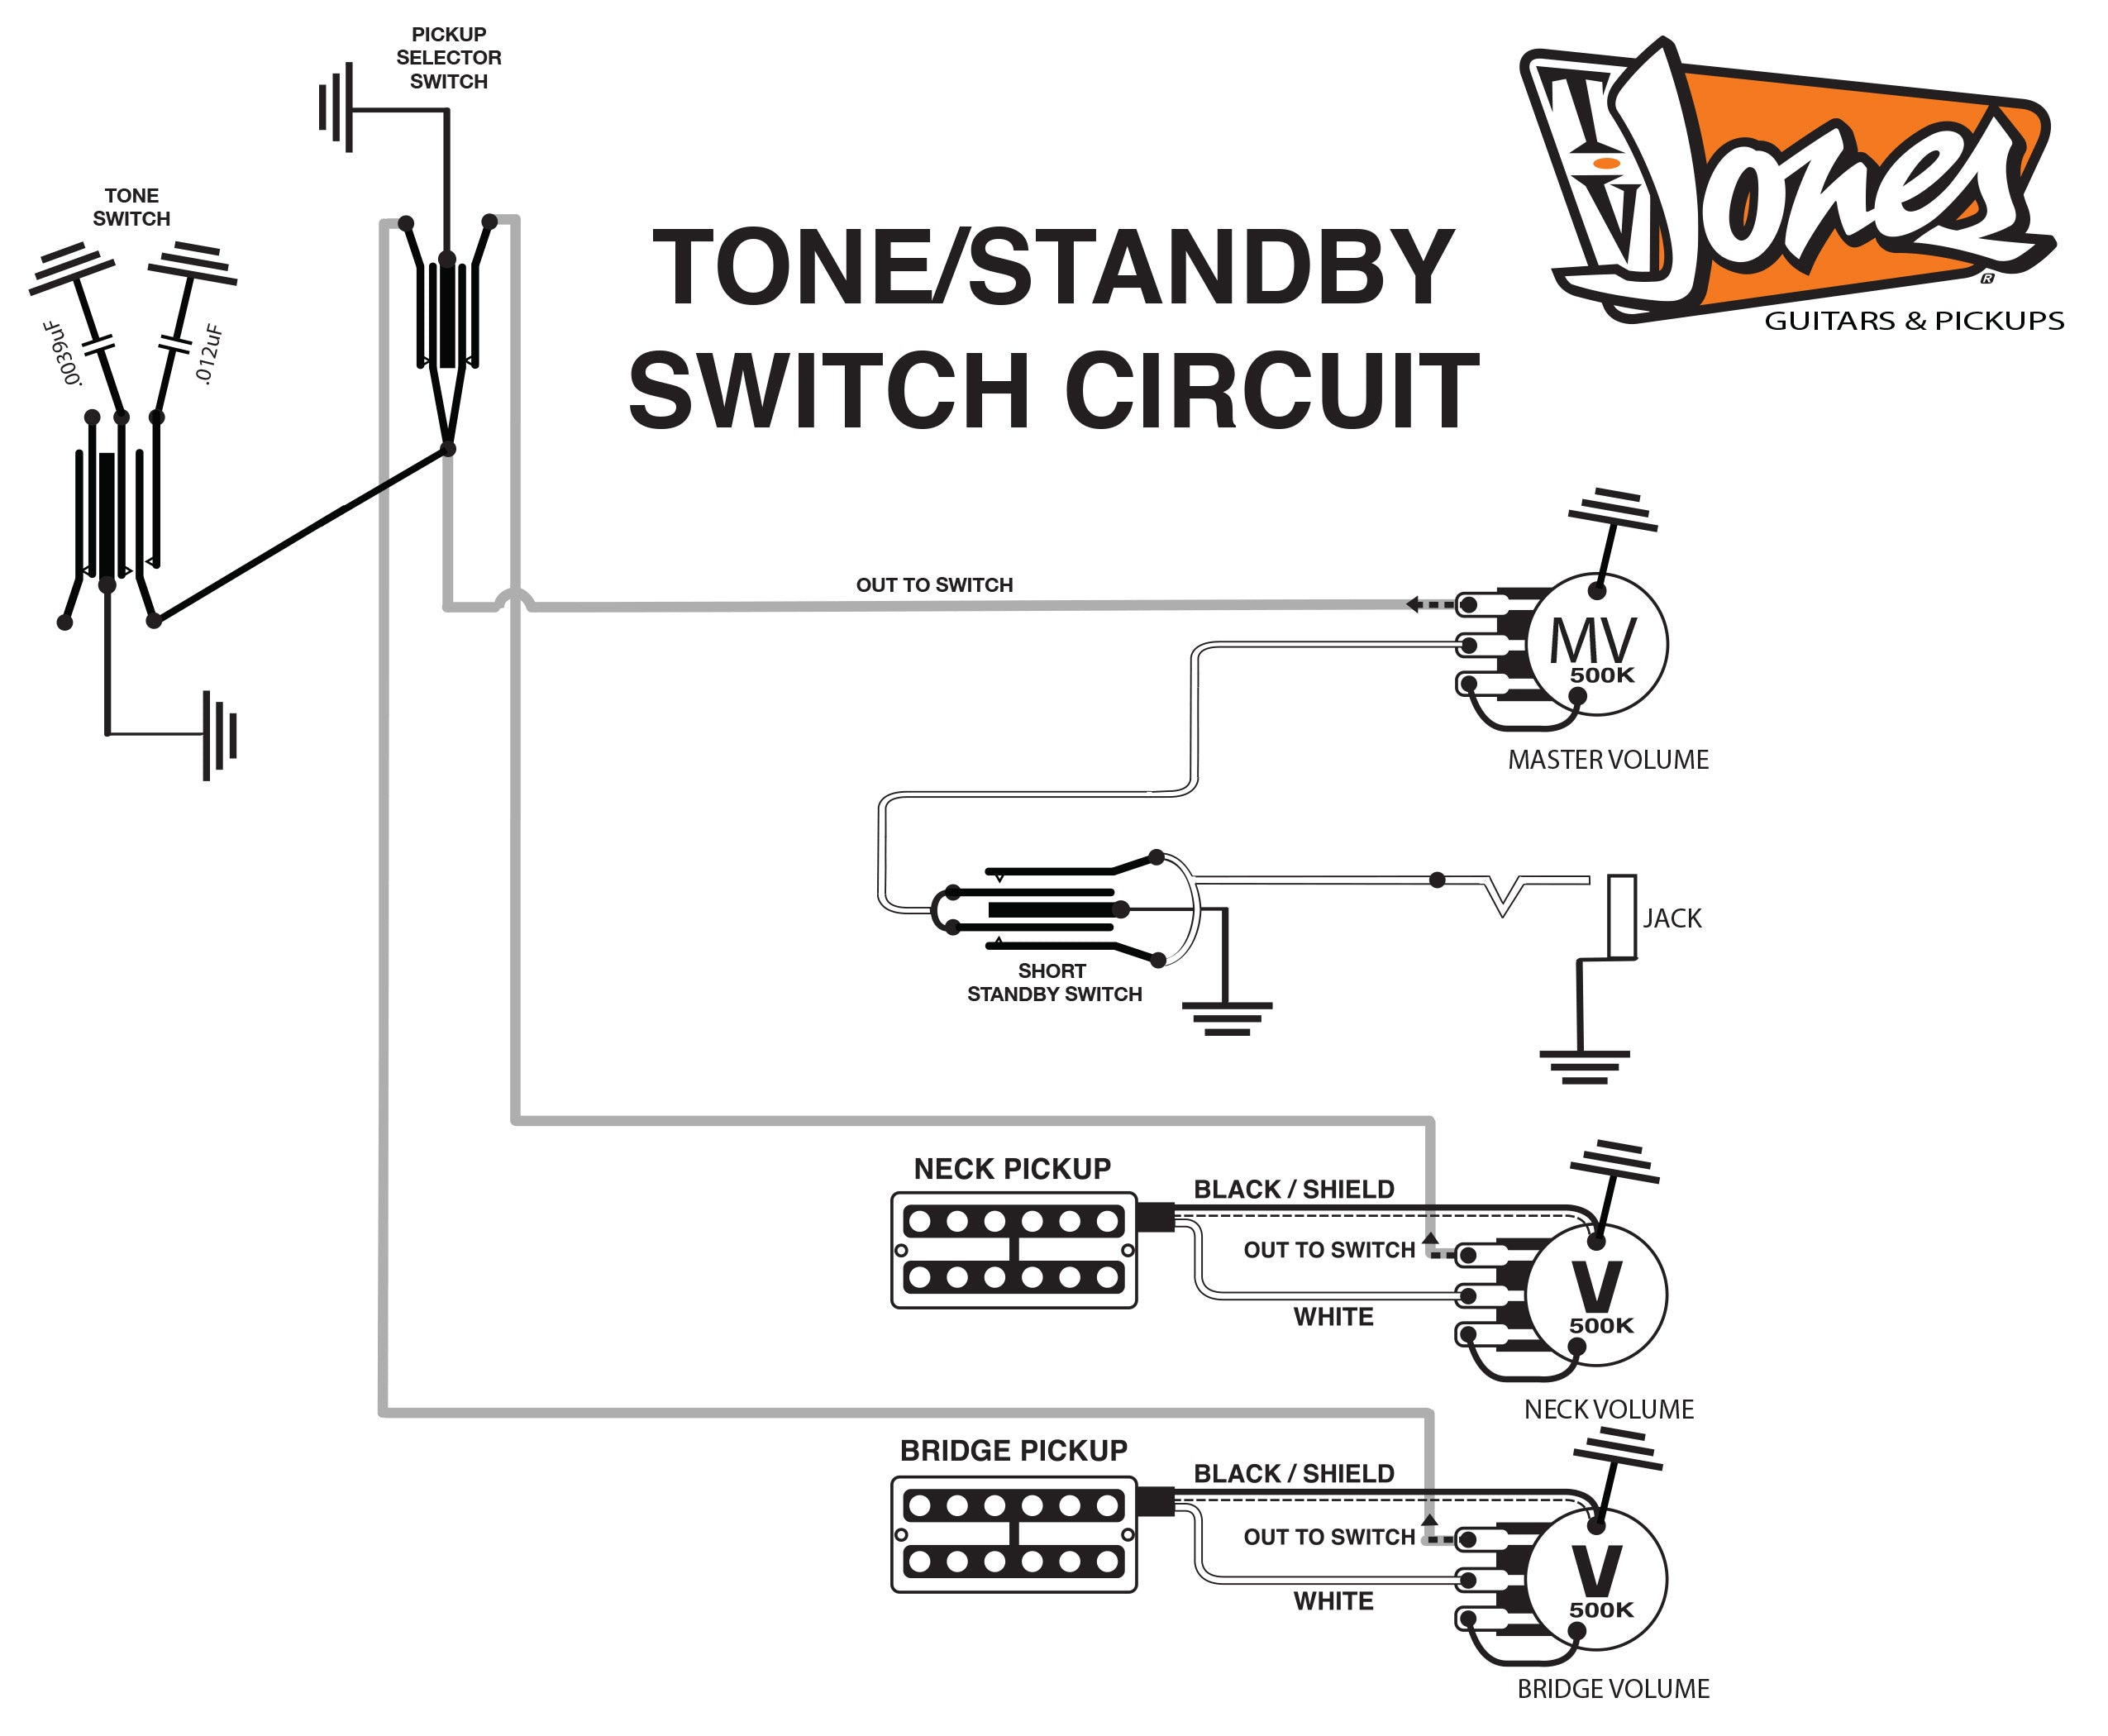 tv jones product dimensions gretsch wiring harness gretsch pickup wiring diagram #2